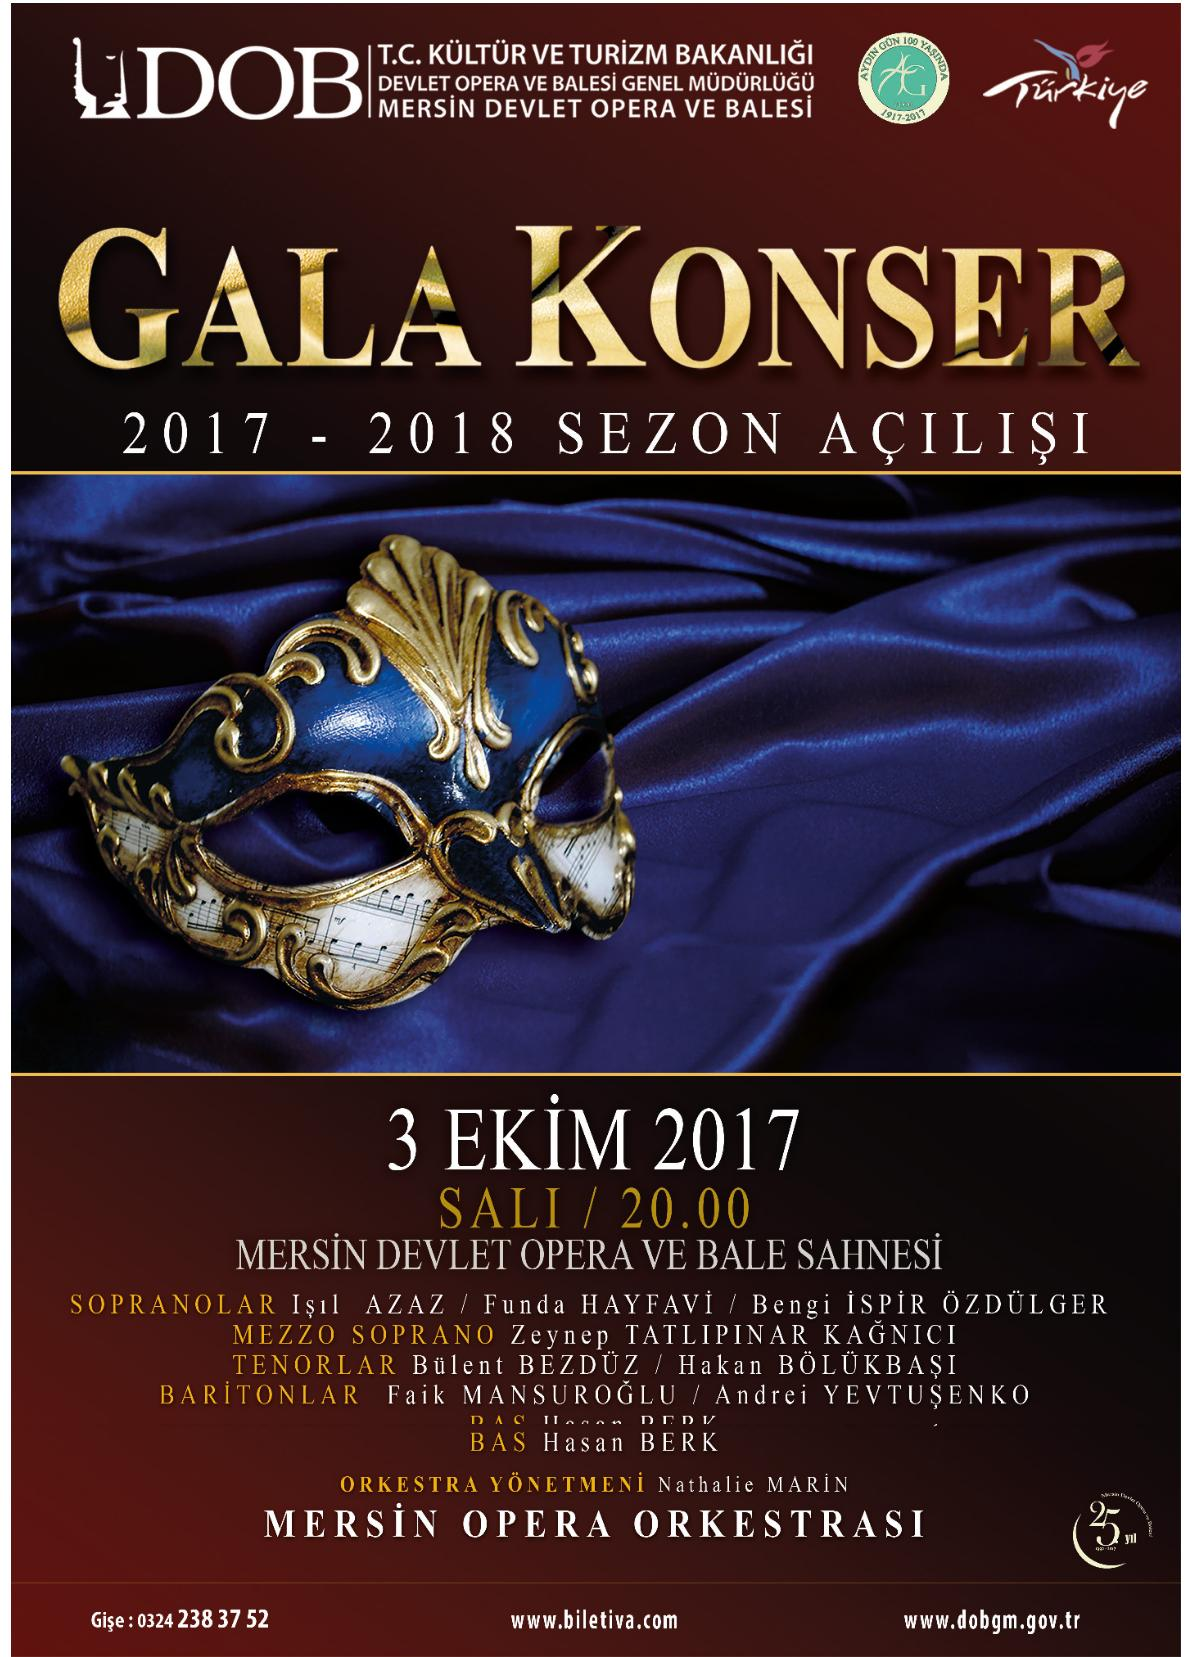 Mersin State Opera and Ballet – Premiere Concert of the 2017-2018 Season